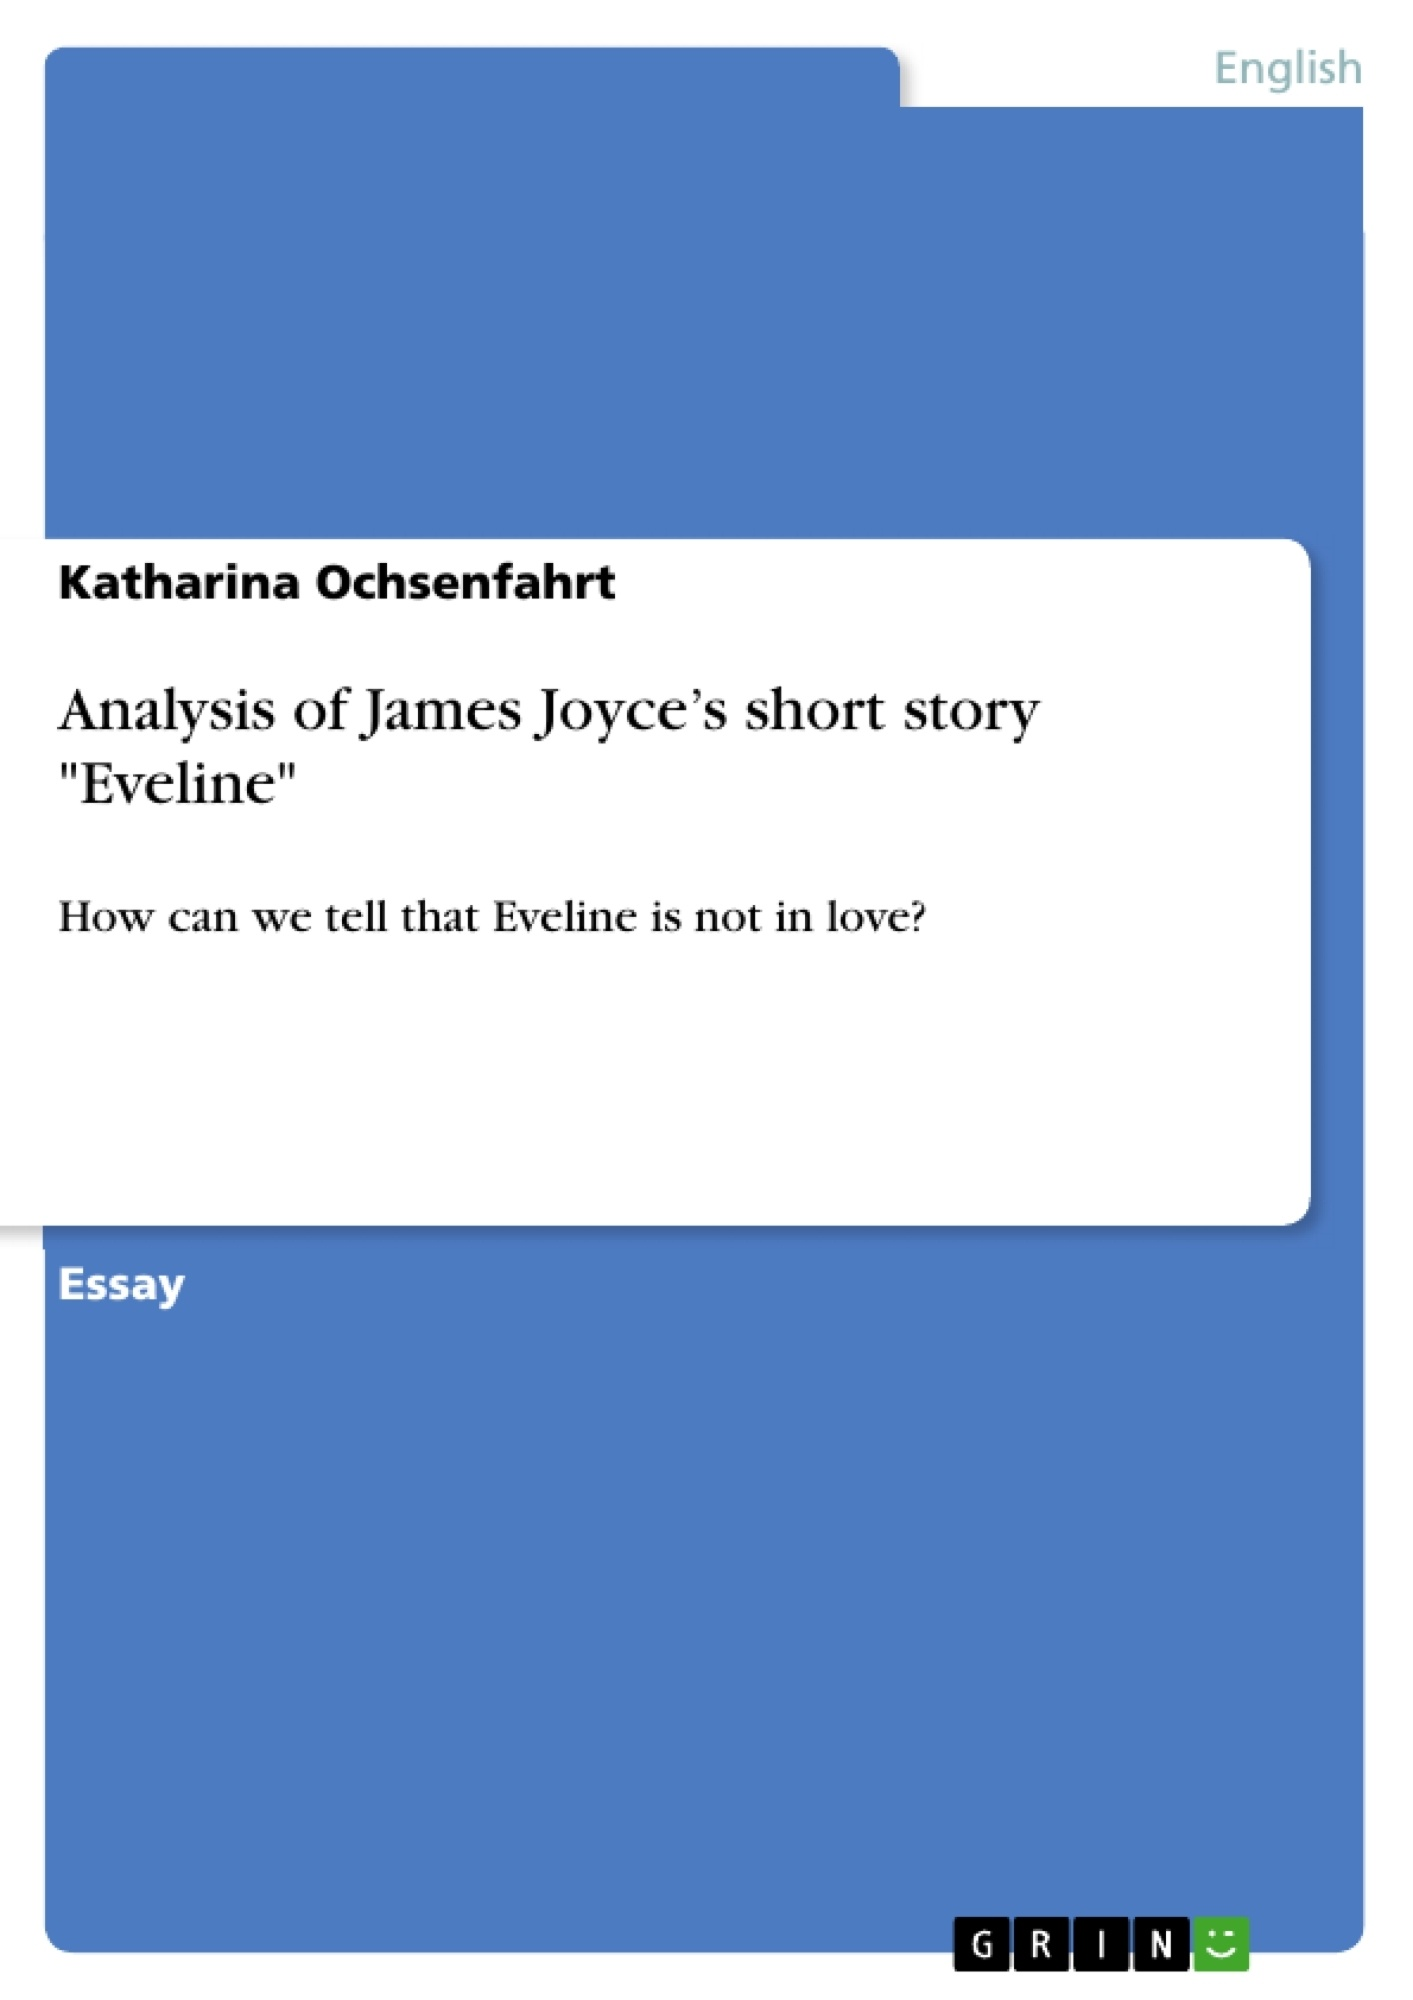 analysis of james joyce s short story eveline publish your  upload your own papers earn money and win an iphone x